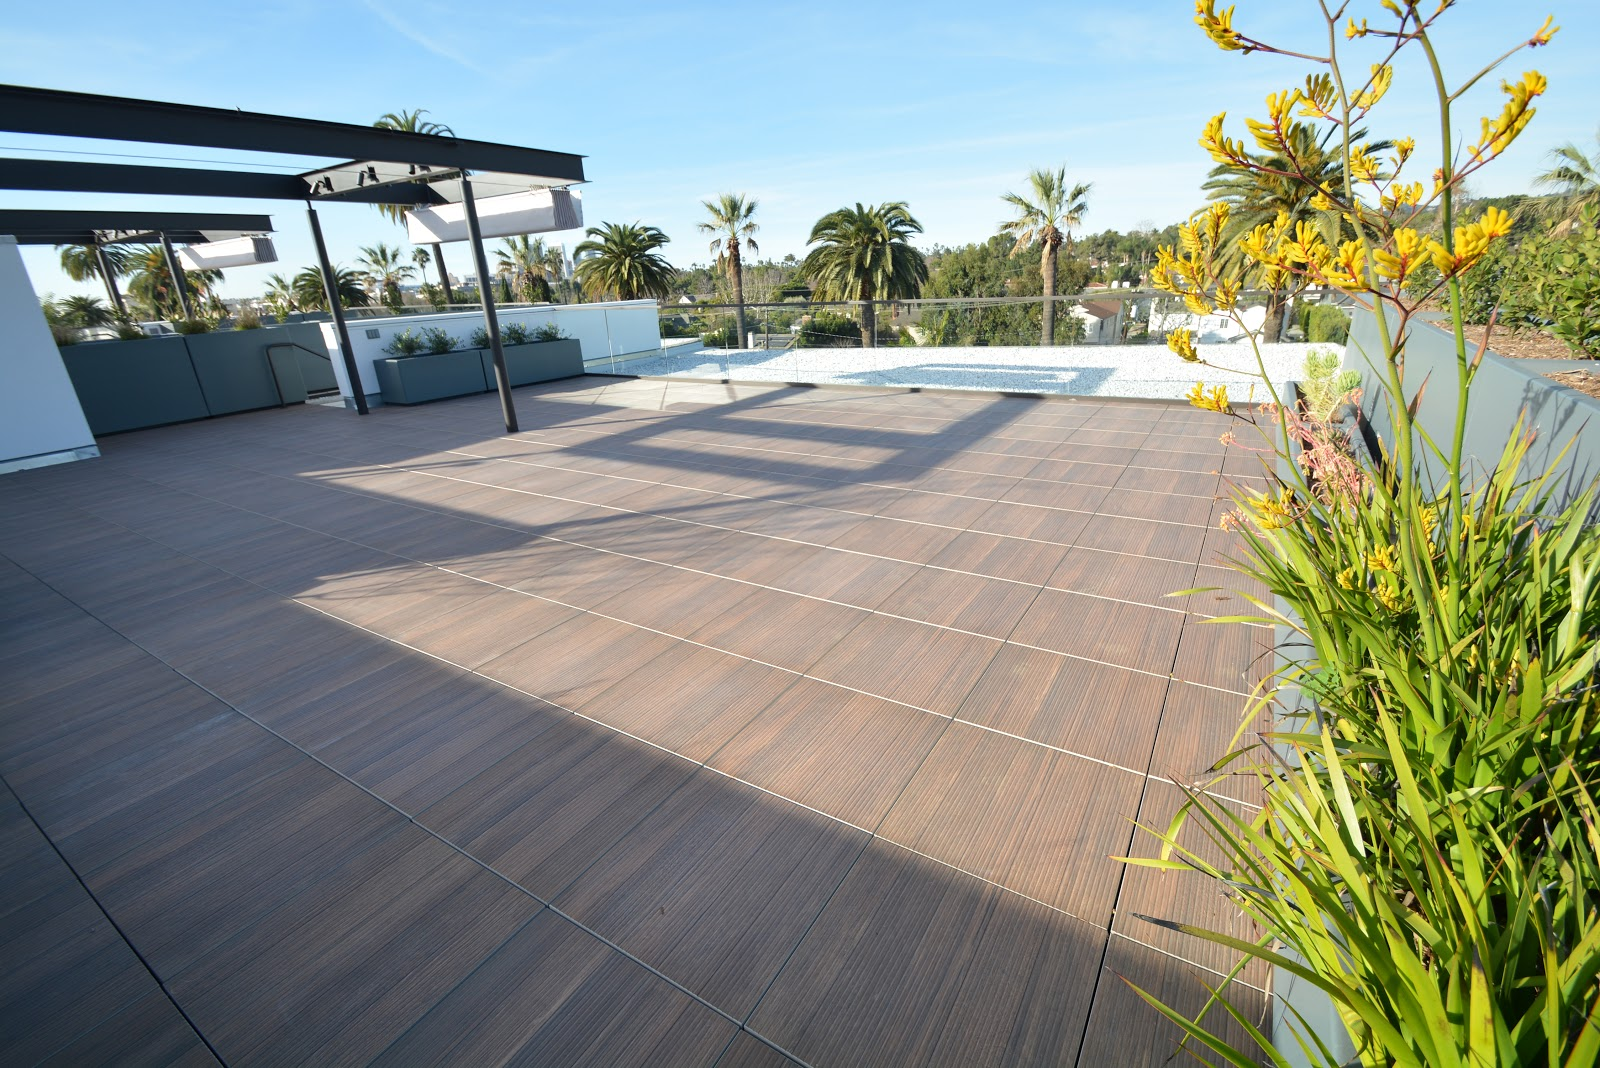 Transform Your Roof Deck with Porcelain Pavers